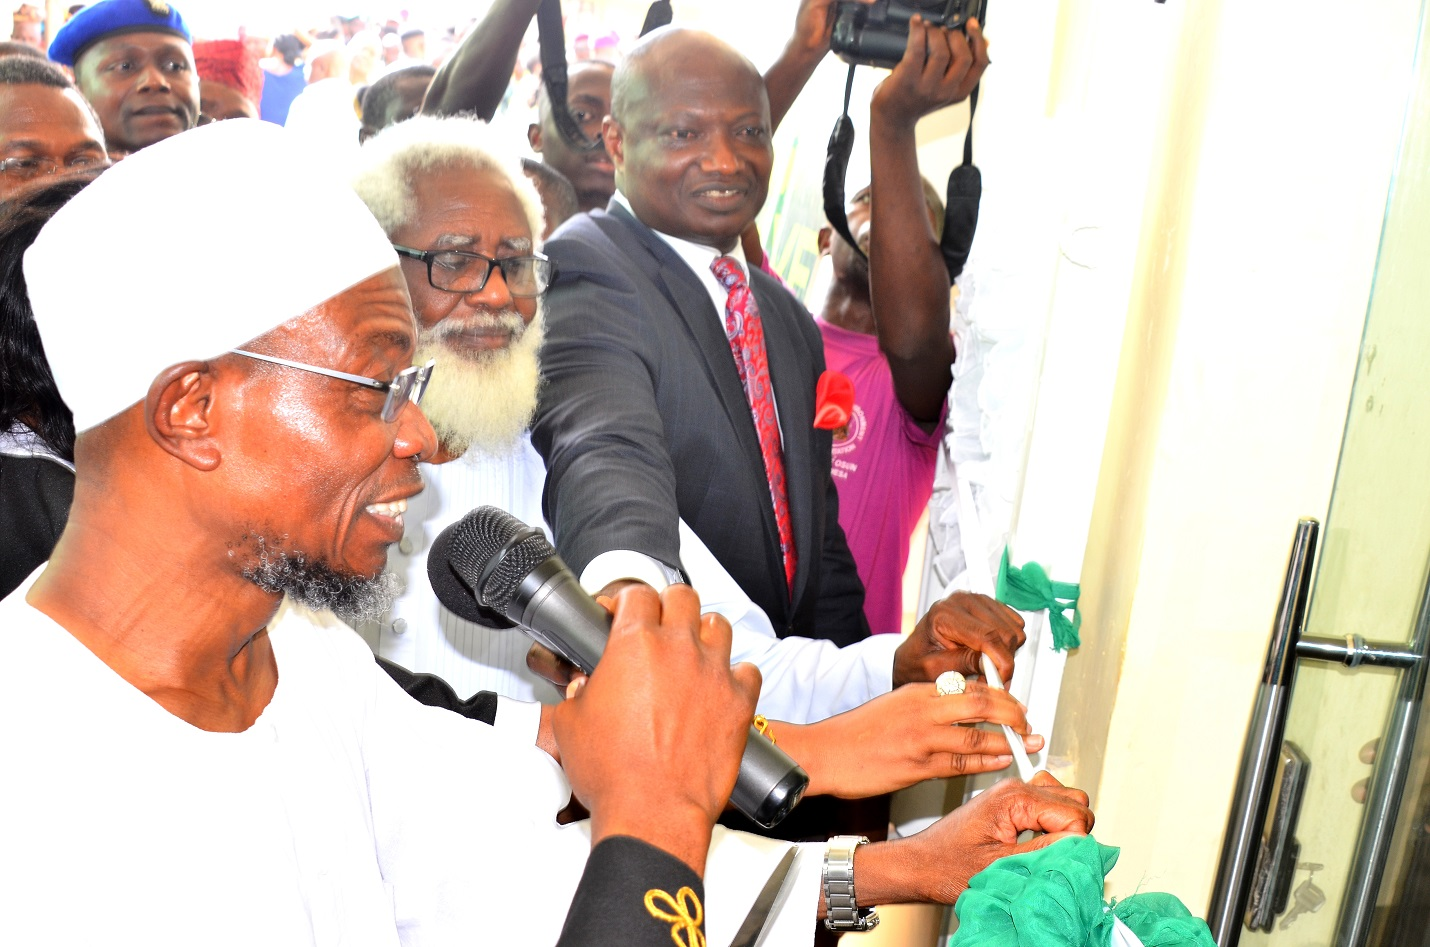 From left-  Governor State of Osun, Ogbeni Rauf  Aregbesola,  Chairman of Occasion, Dr. Yemi Farounbi and  Chief Executive Officer Rave FM 91.7, Mr. Femi Adefila during the Official Commissioning of Rav e F.M Radio at Agunbelewo,Area Osogbo, State of Osun, on Thursday 26/11/2015.